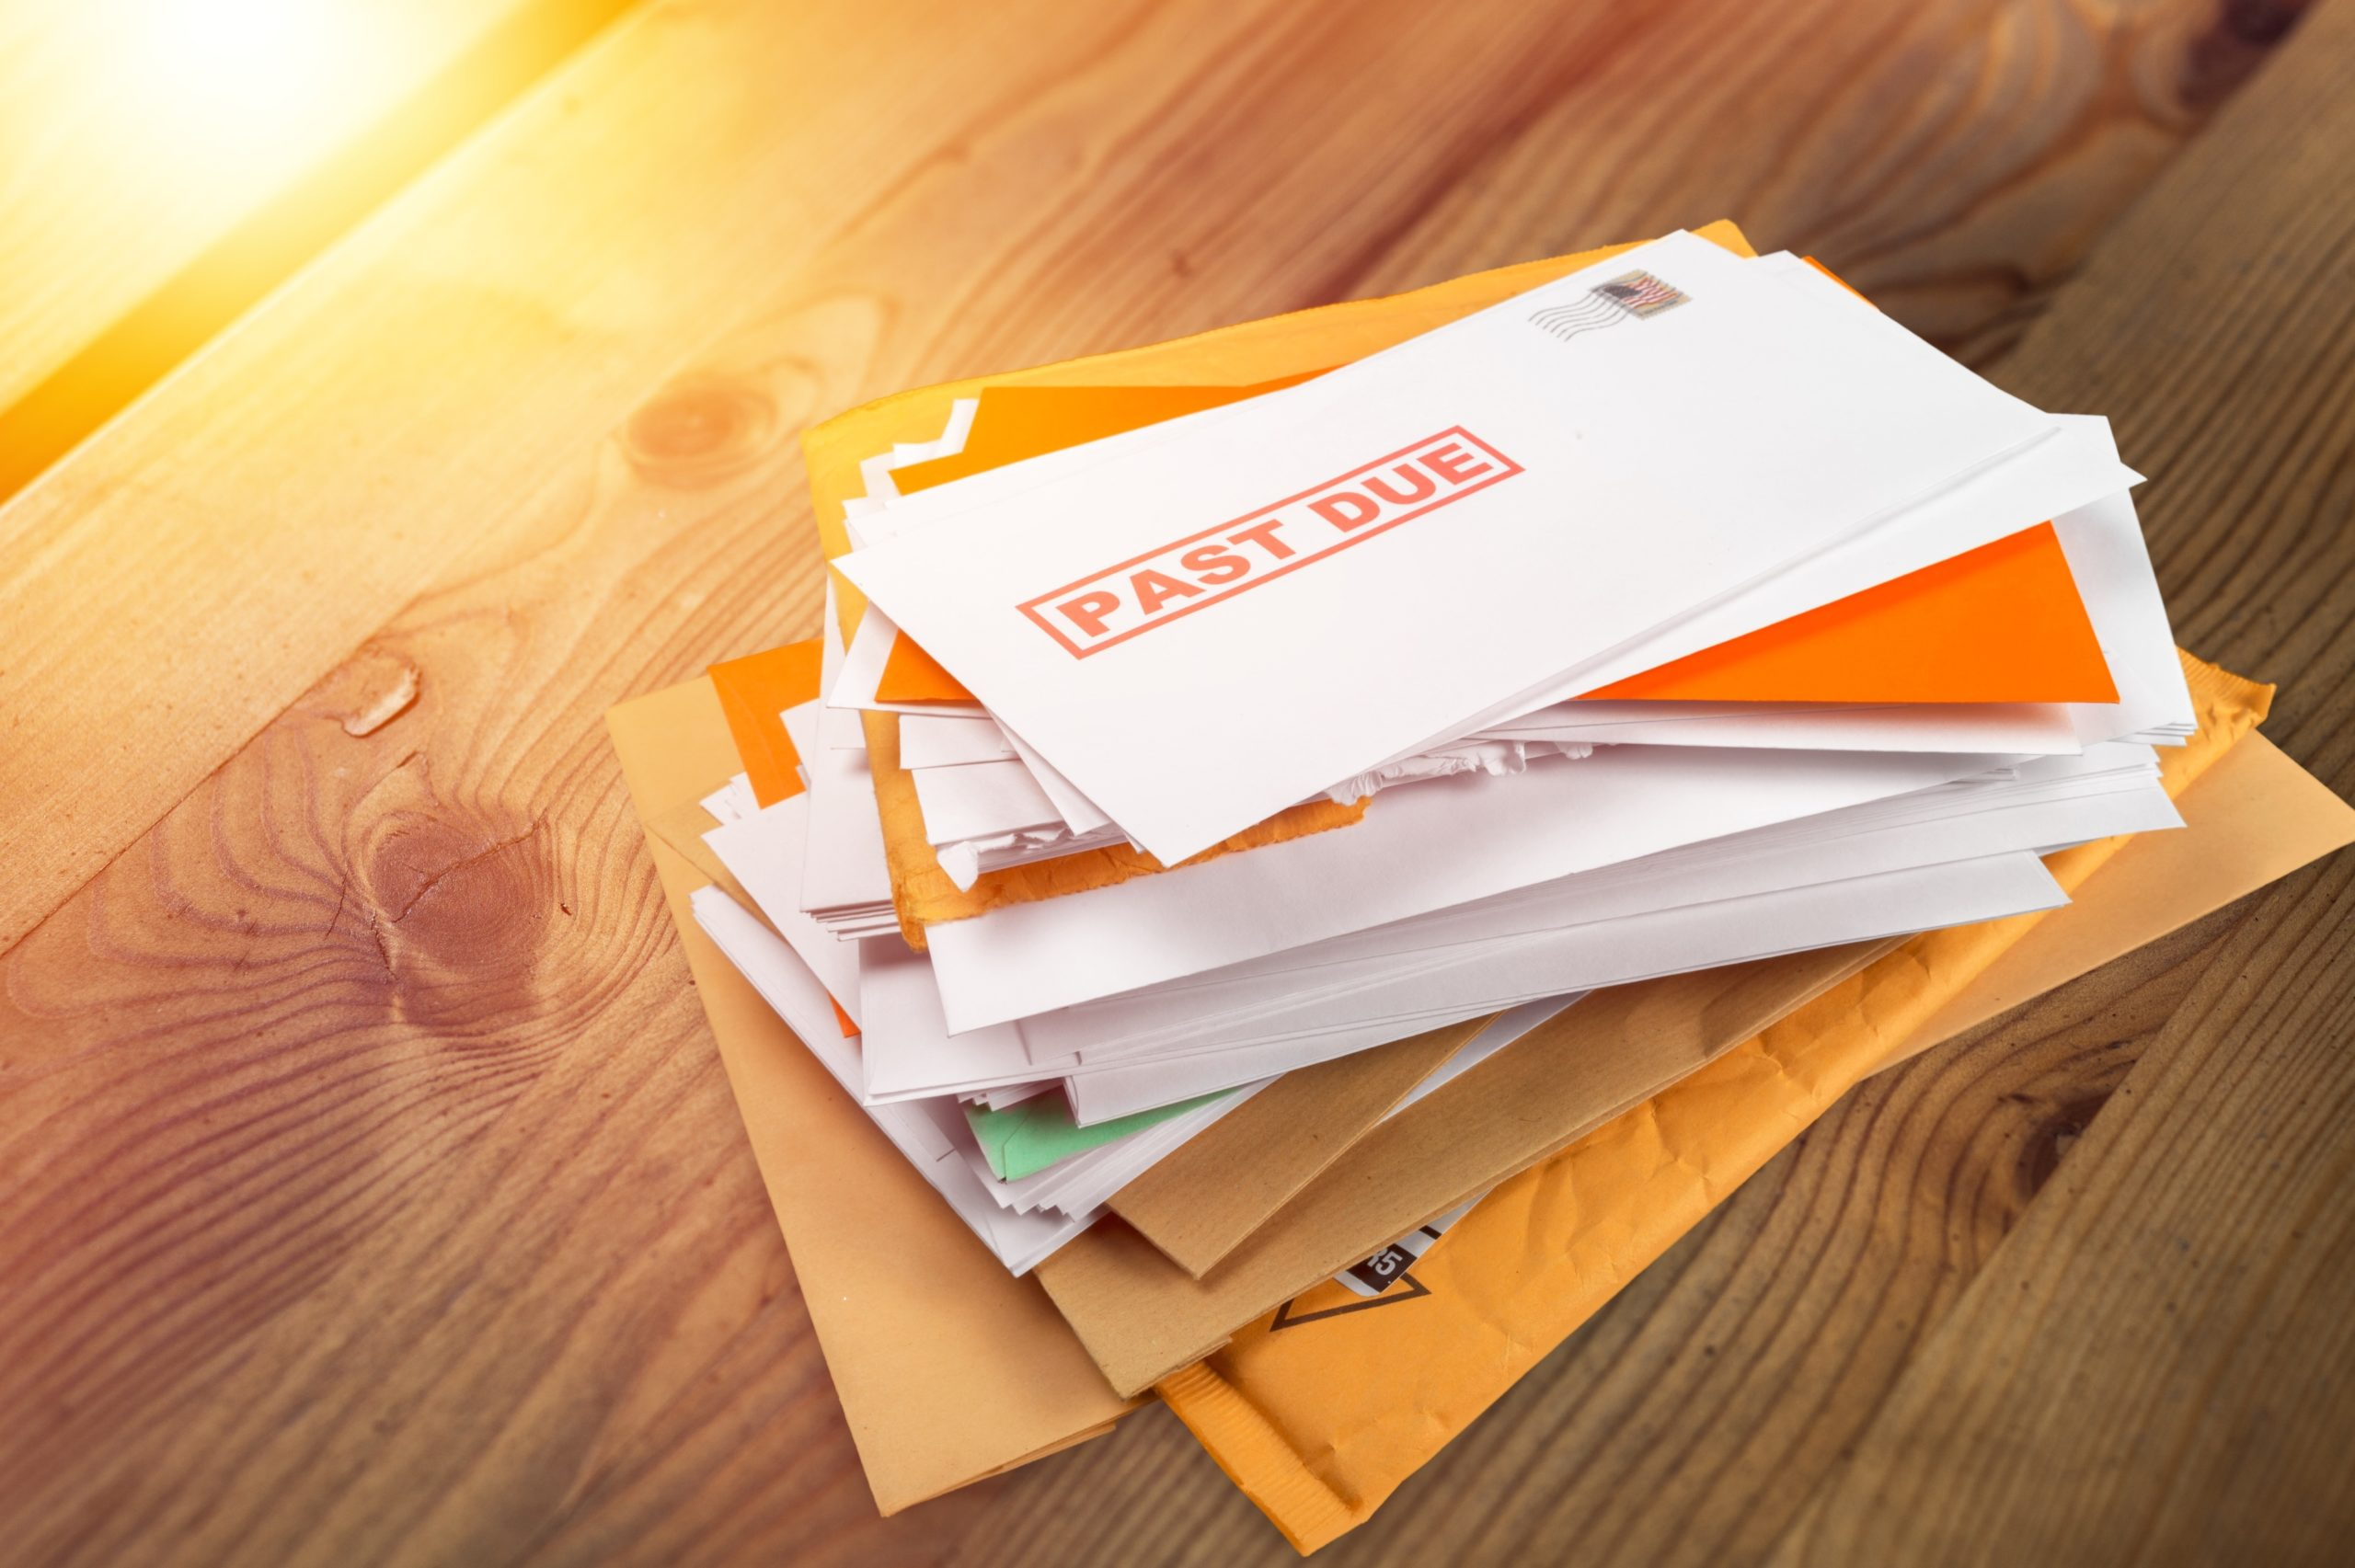 Pile of envelopes with overdue utility bills on the desk